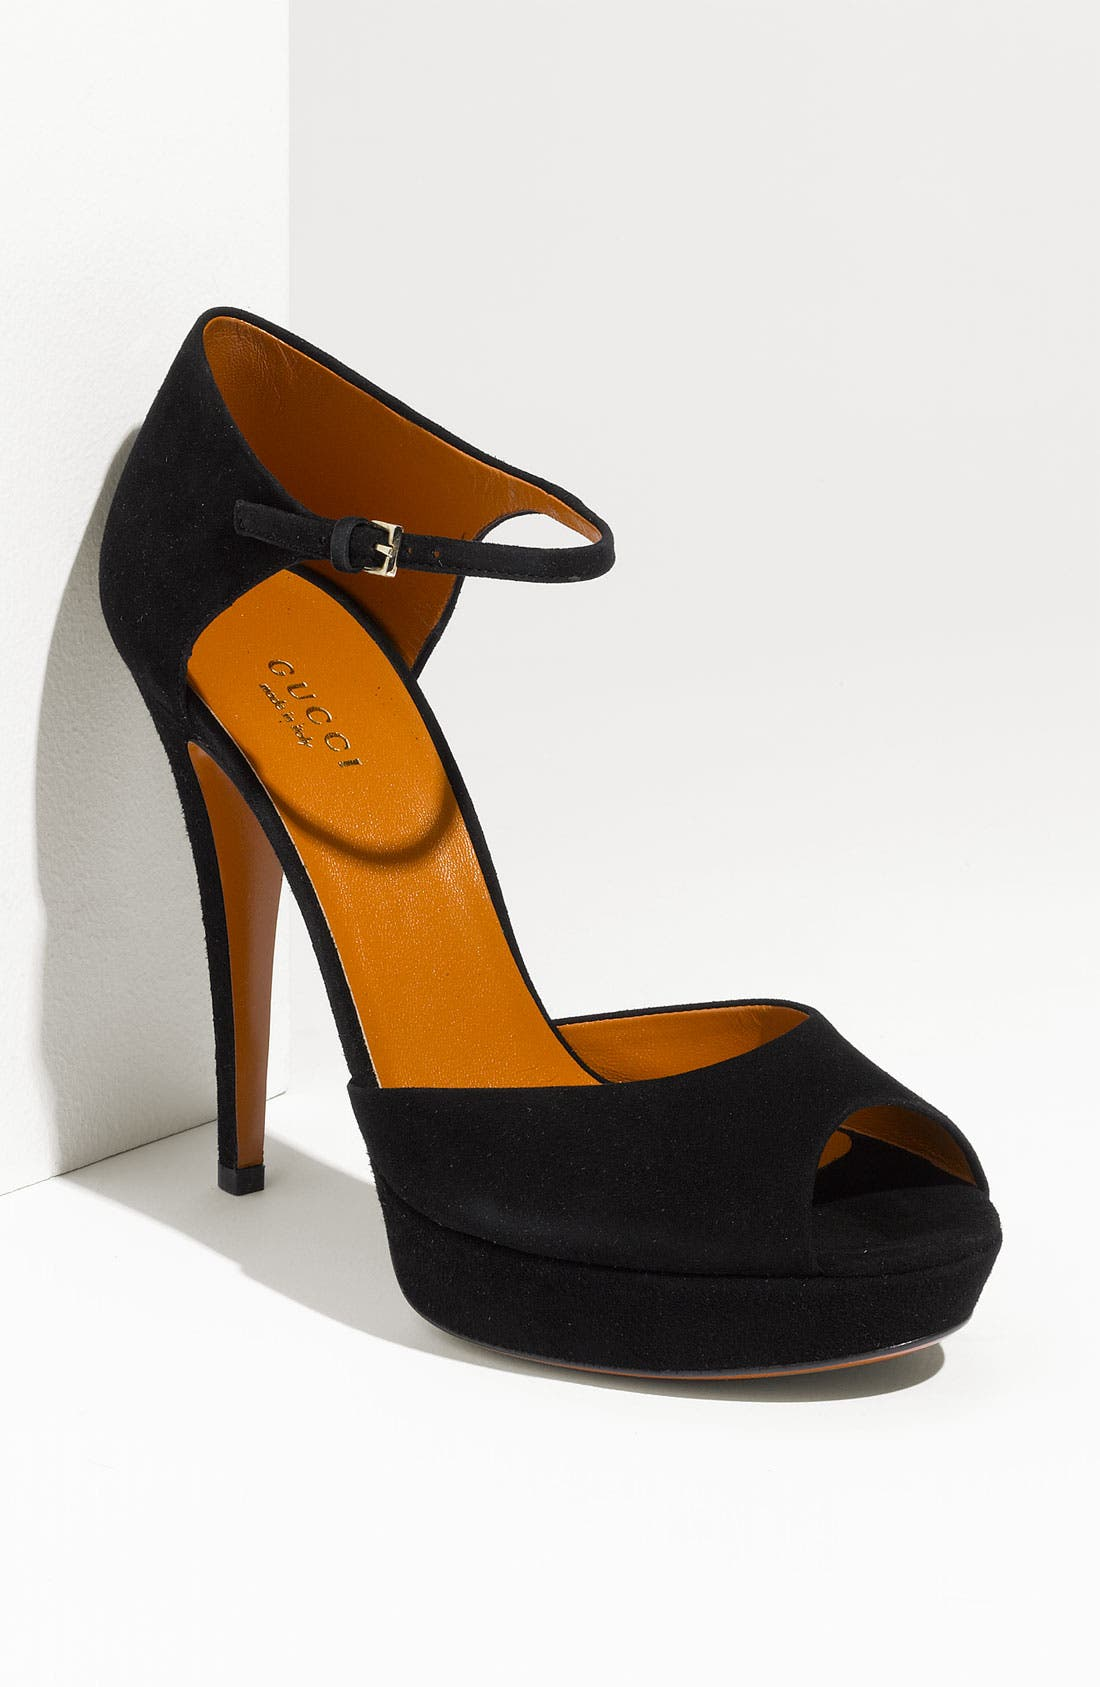 Alternate Image 1 Selected - Gucci Ankle Strap Peep Toe Pump